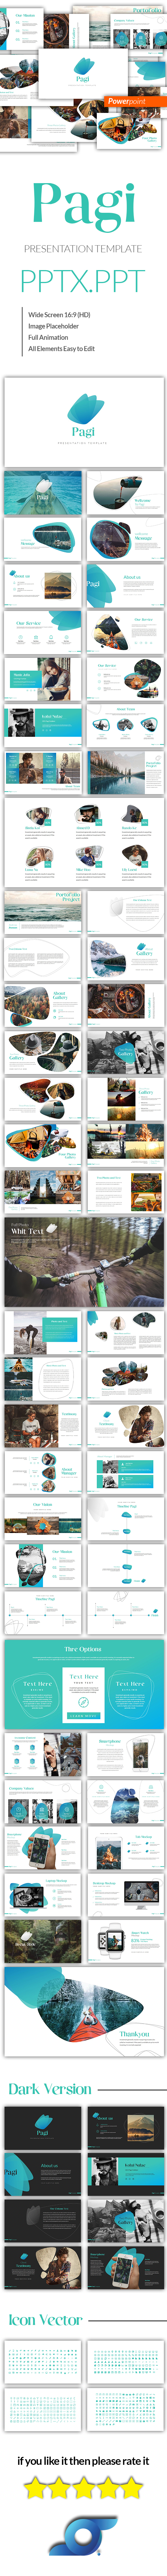 Pagi Modren Powerpoint Template - Abstract PowerPoint Templates